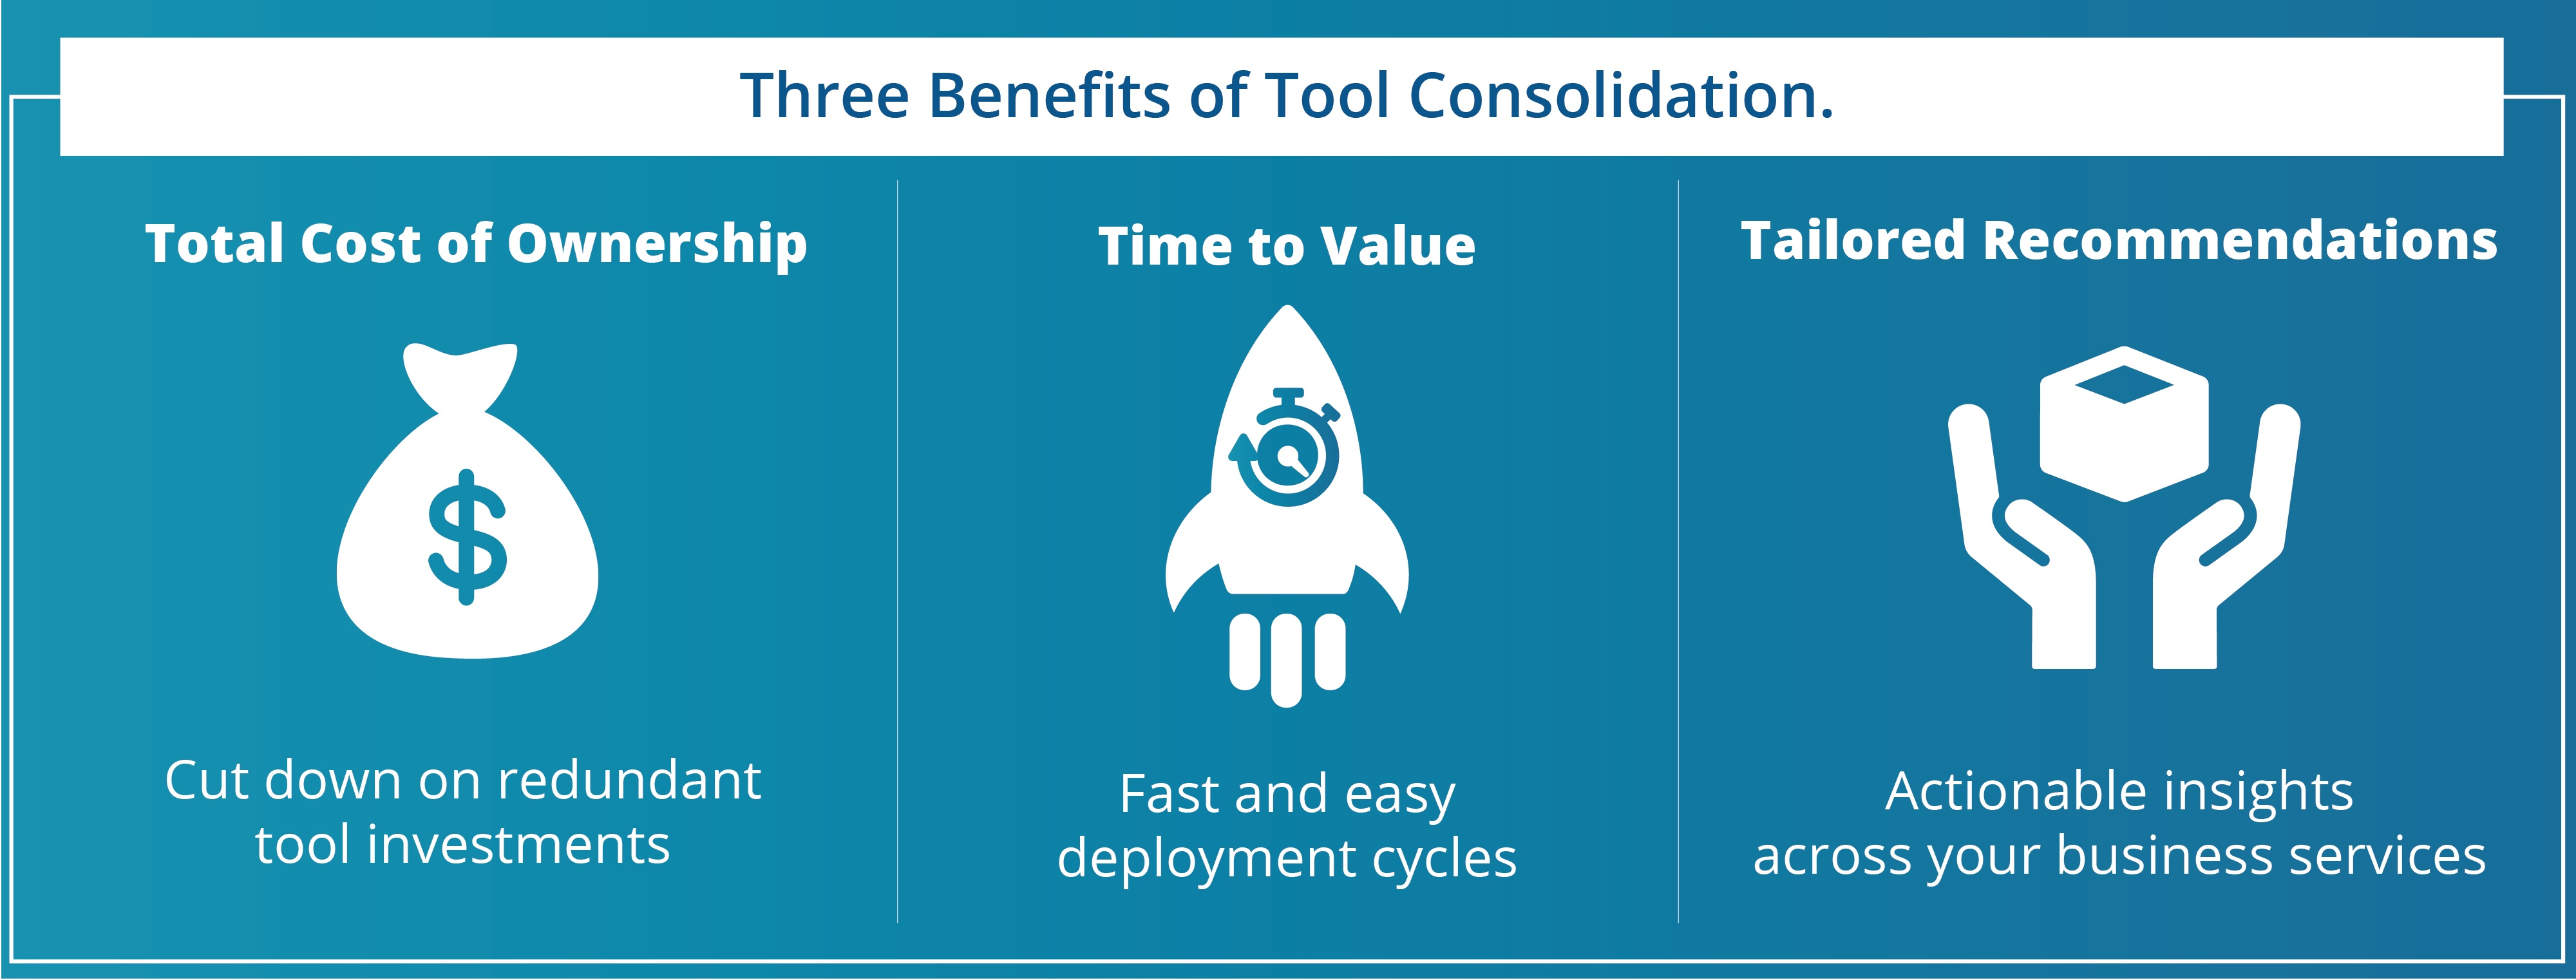 Three Benefits of Tool Consolidation